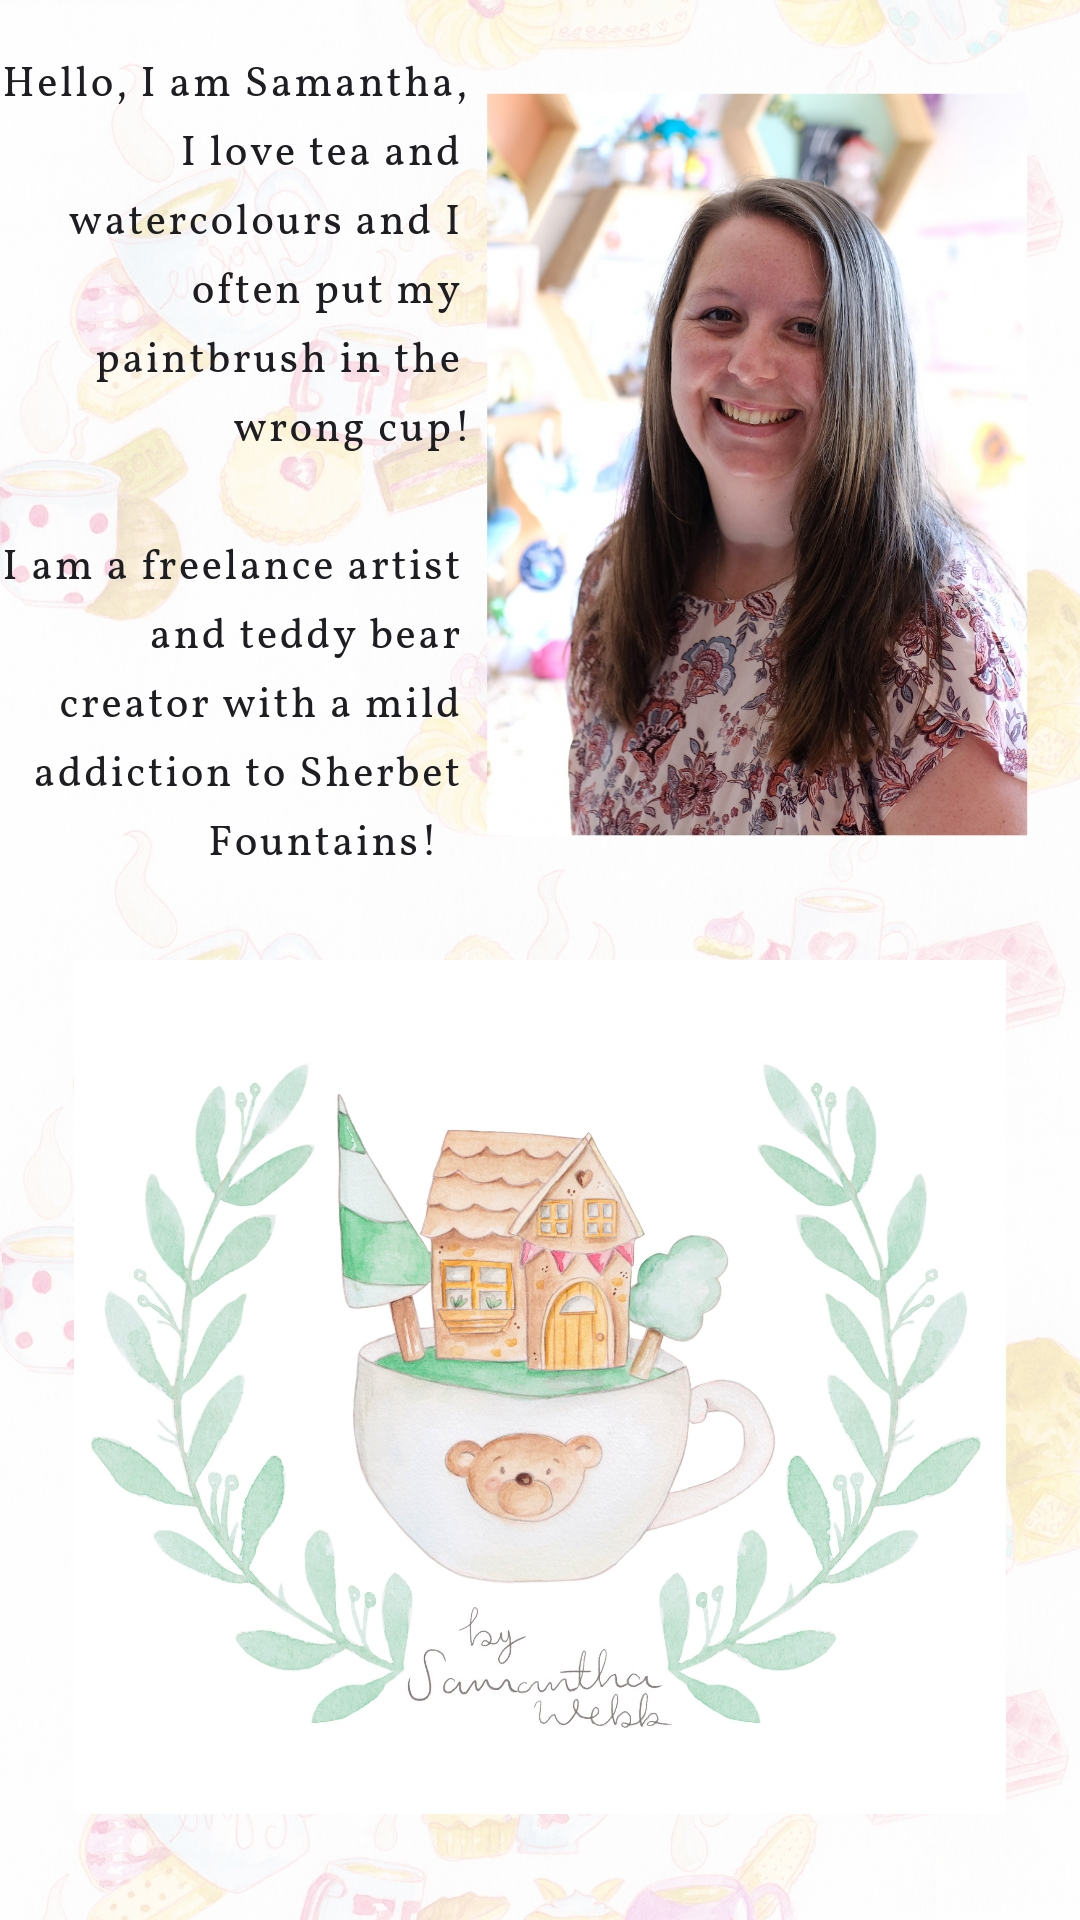 hello, i am samantha, i love tea , watercolours and i often put my paintbrush in the wrong cup! i am a freelance artist and teddy bear creator with a mild addiction to sherbet fo